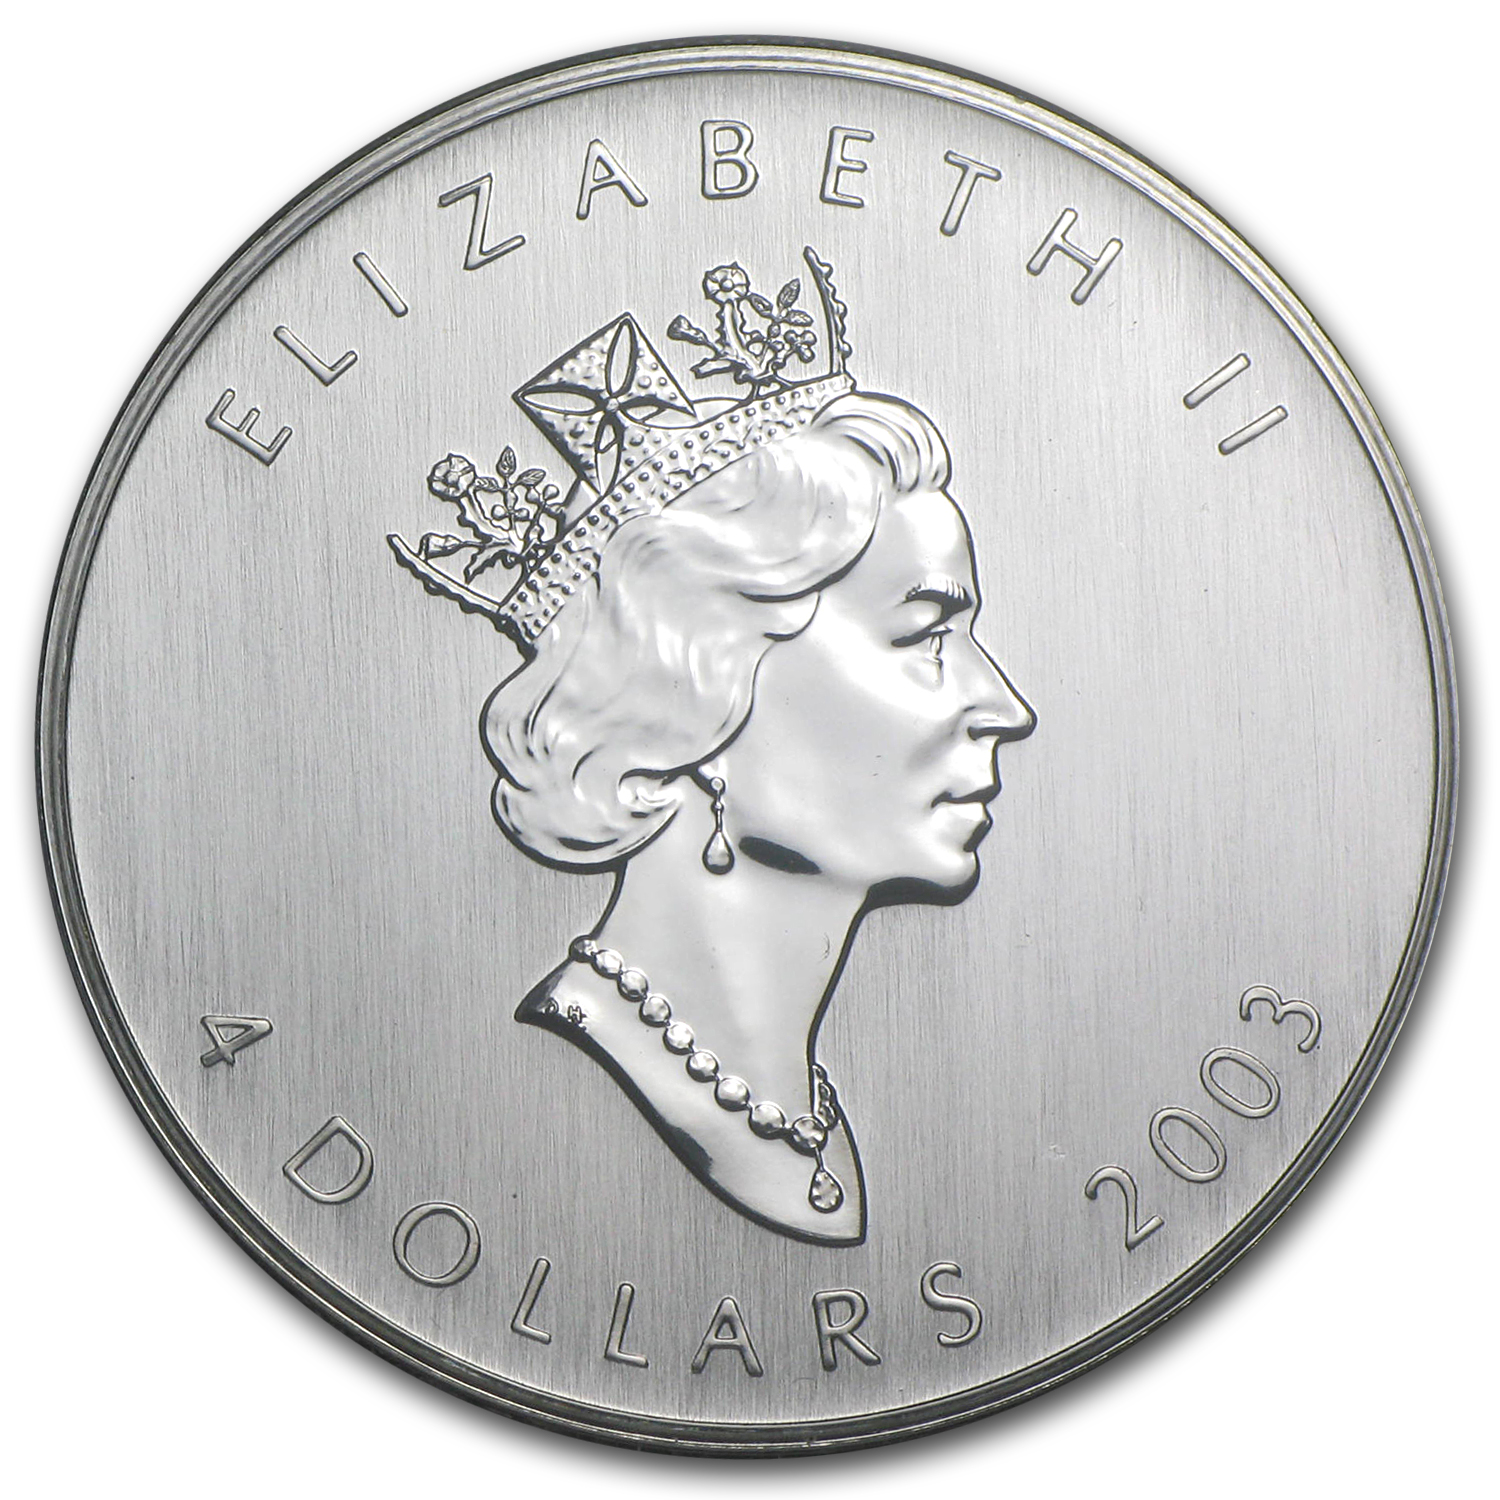 2003 Canada 1/2 oz Silver $4 Maple Leaf (Hologram)